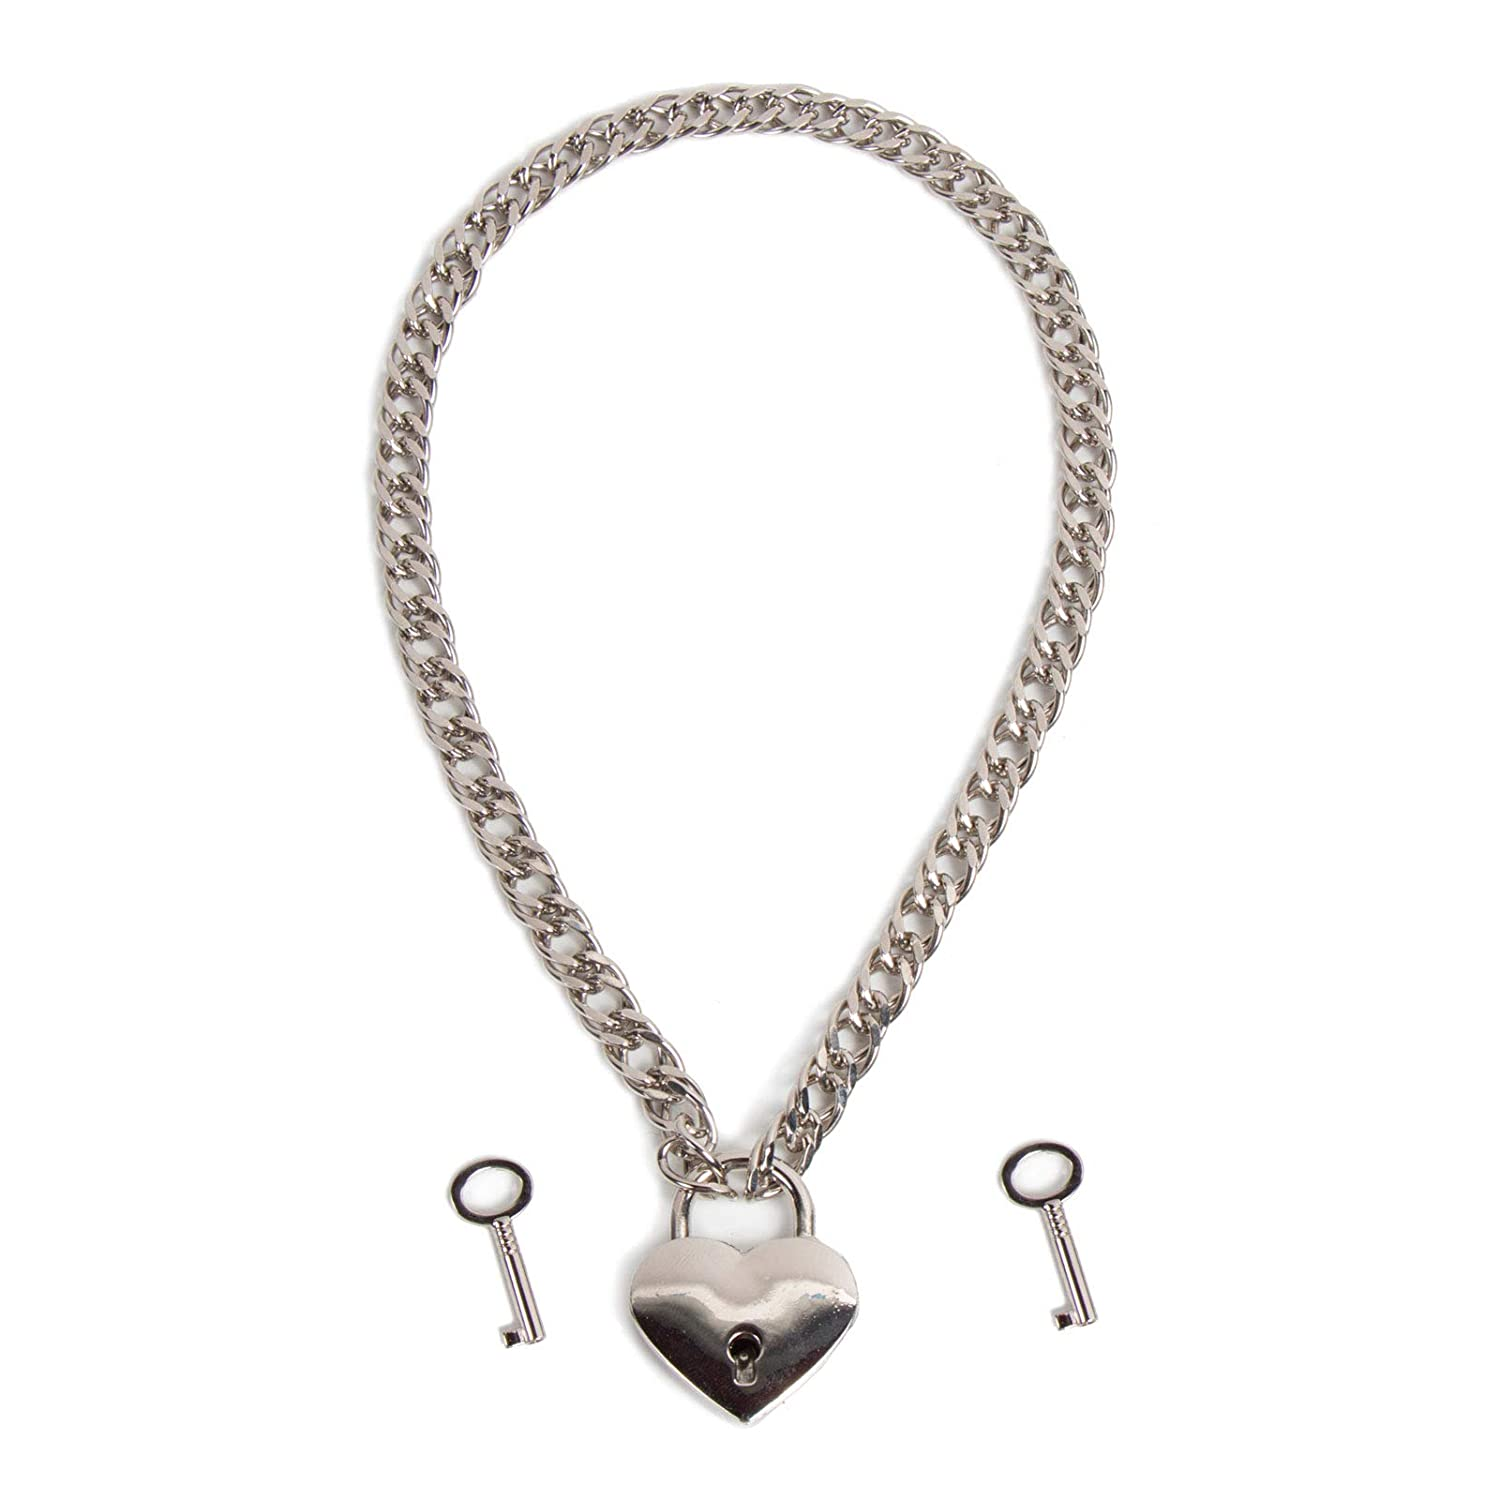 Amazon.com: Collar de cadena y candado de corazón: Clothing